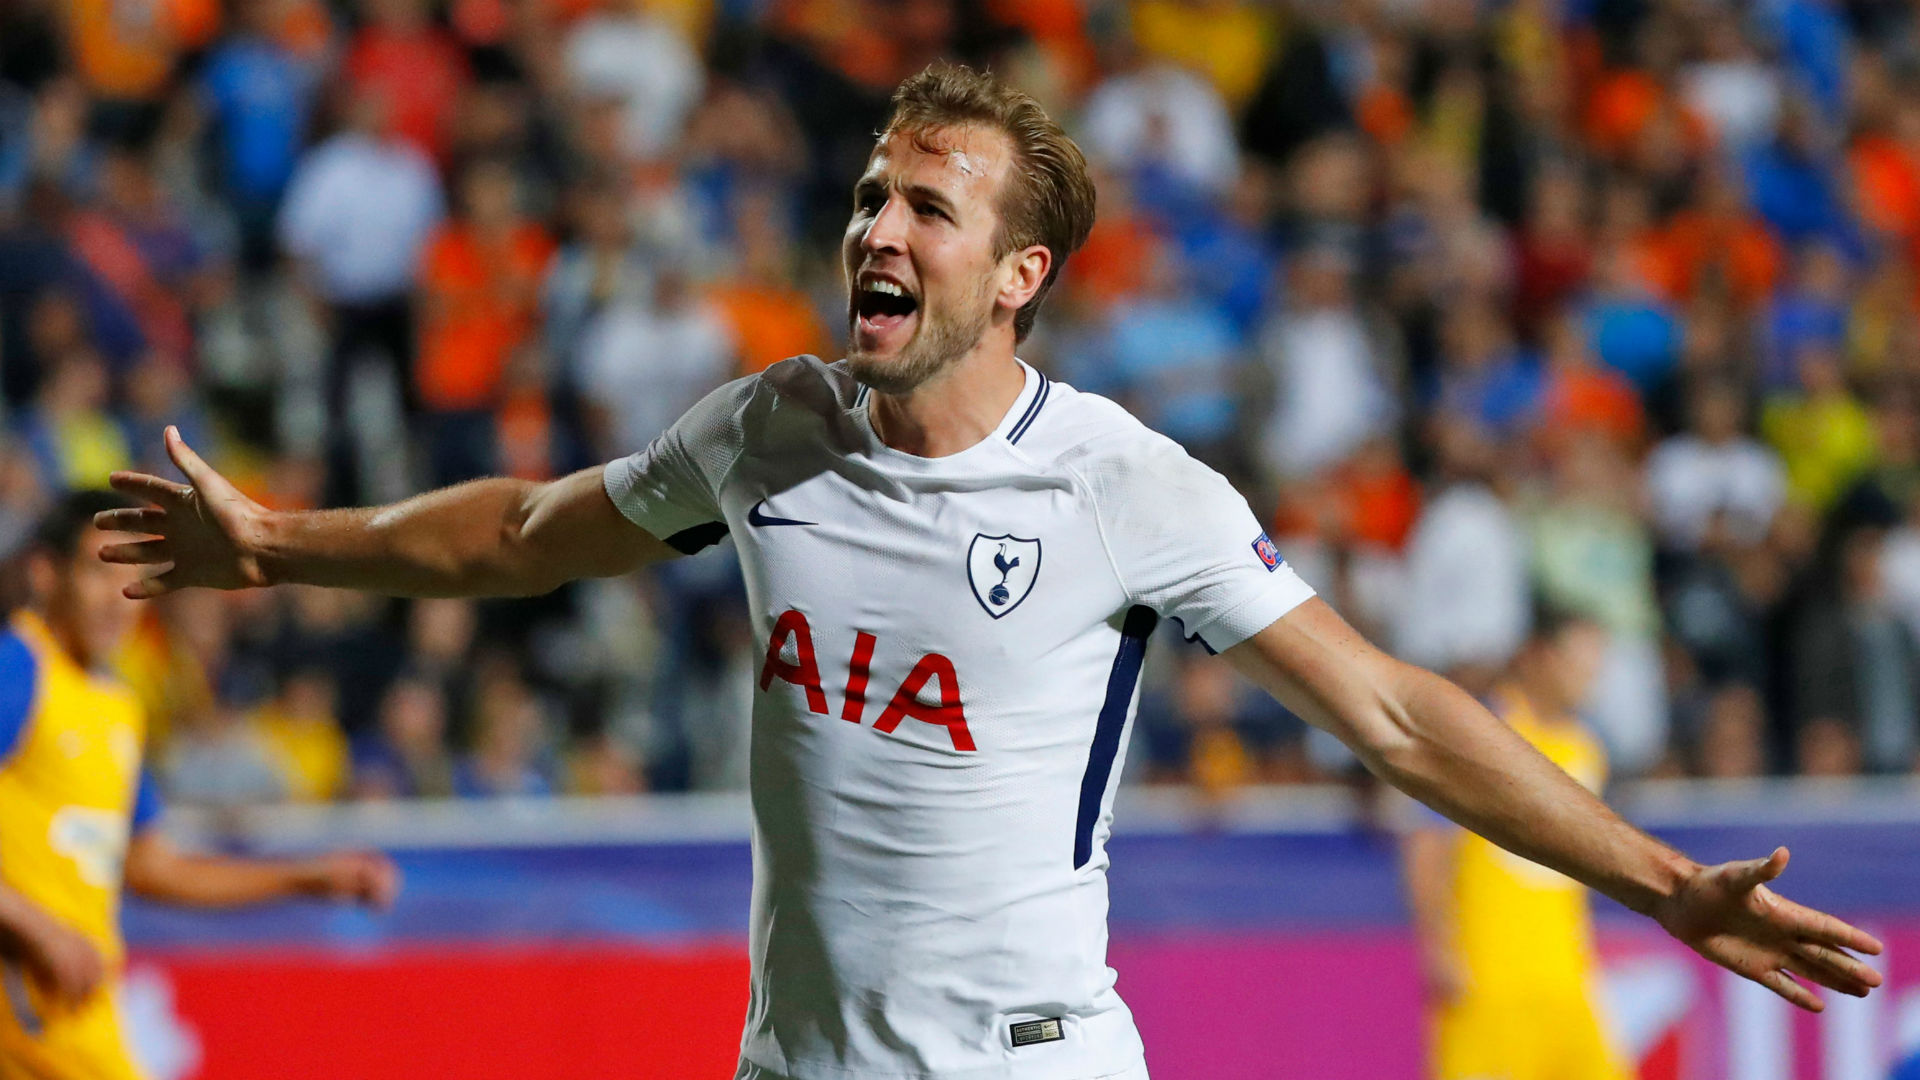 Kane Has Potential To Be One Of The Best Lloris Goal Com